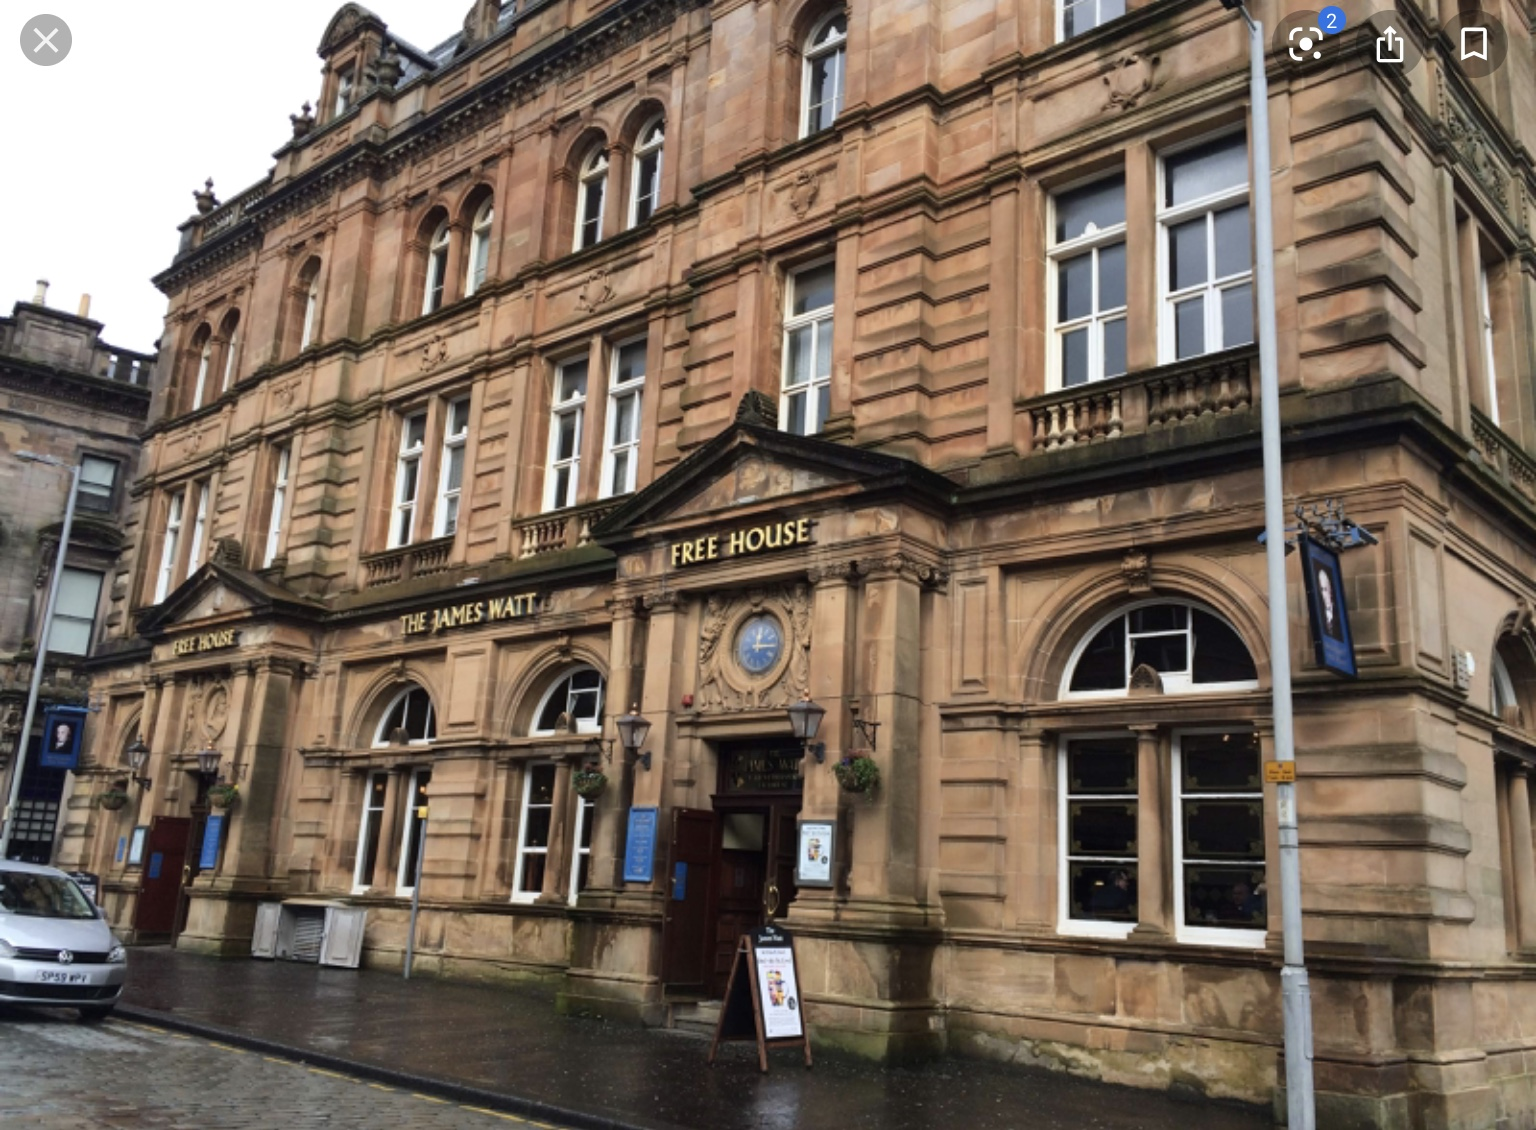 Wetherspoons James Watt Pub in Greenock